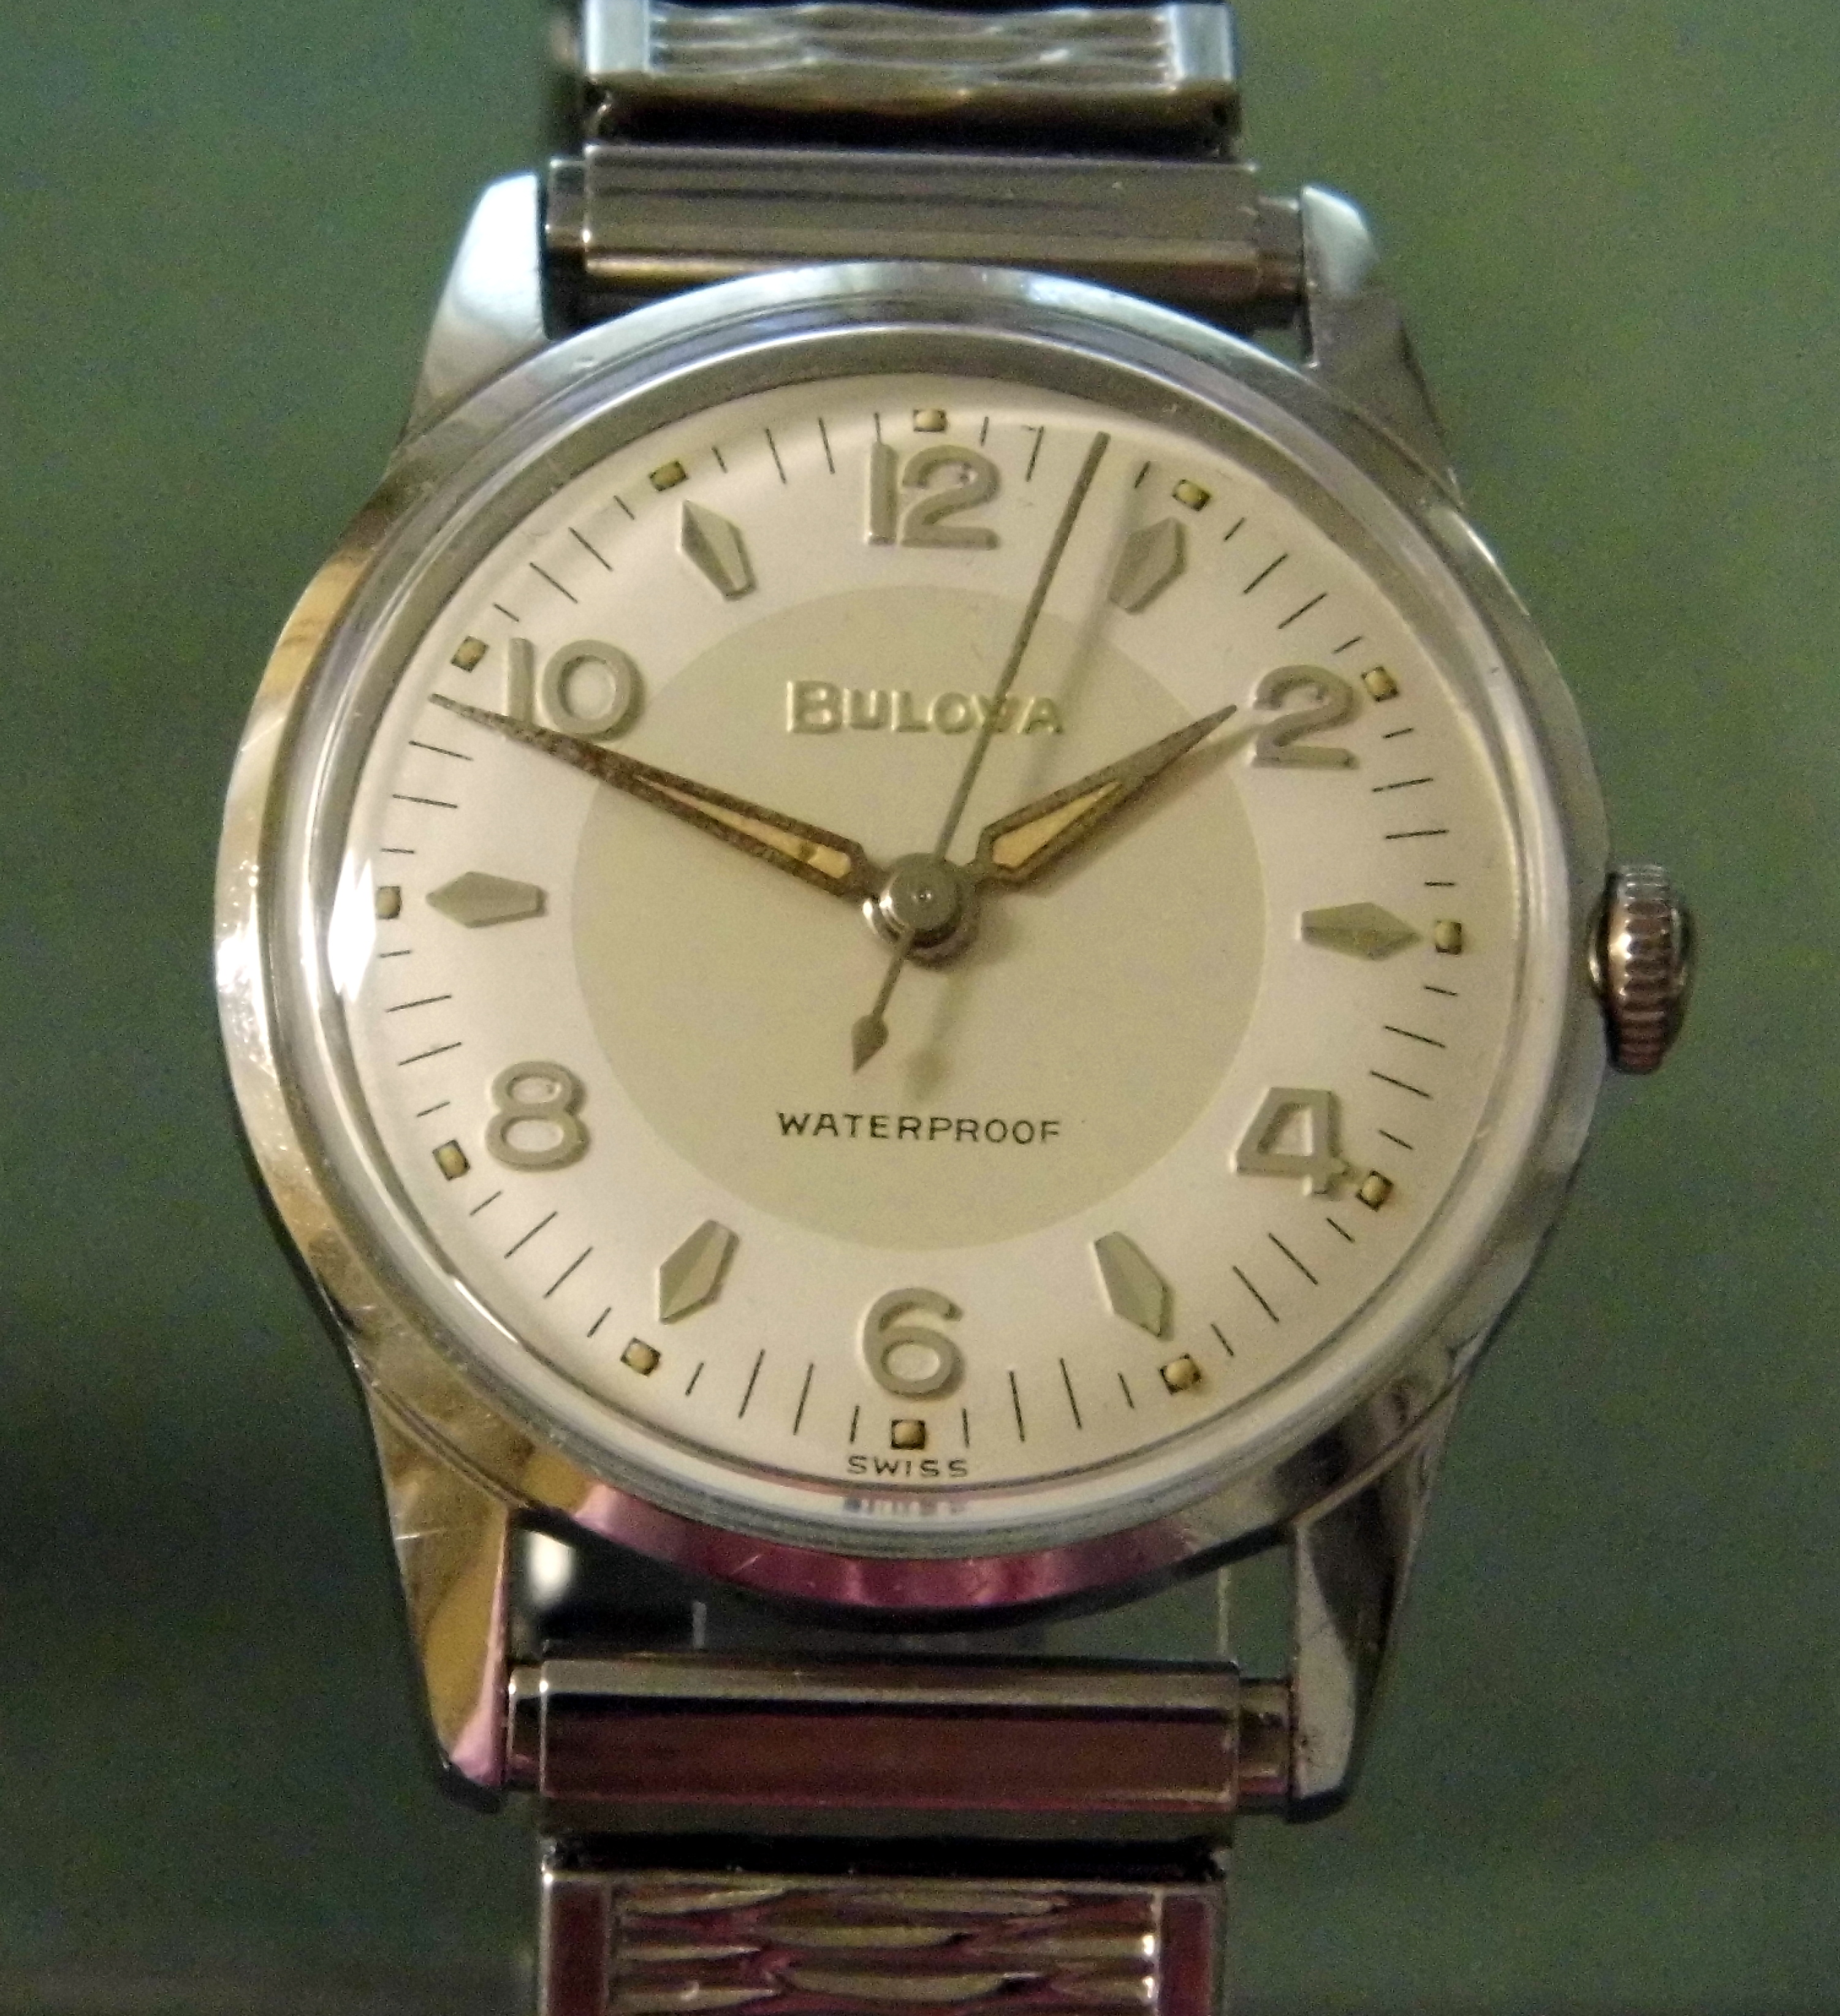 file vintage bulova manual wind men s watch swiss made 9657651936 rh commons wikimedia org bulova moon watch manual bulova chronograph watch manual